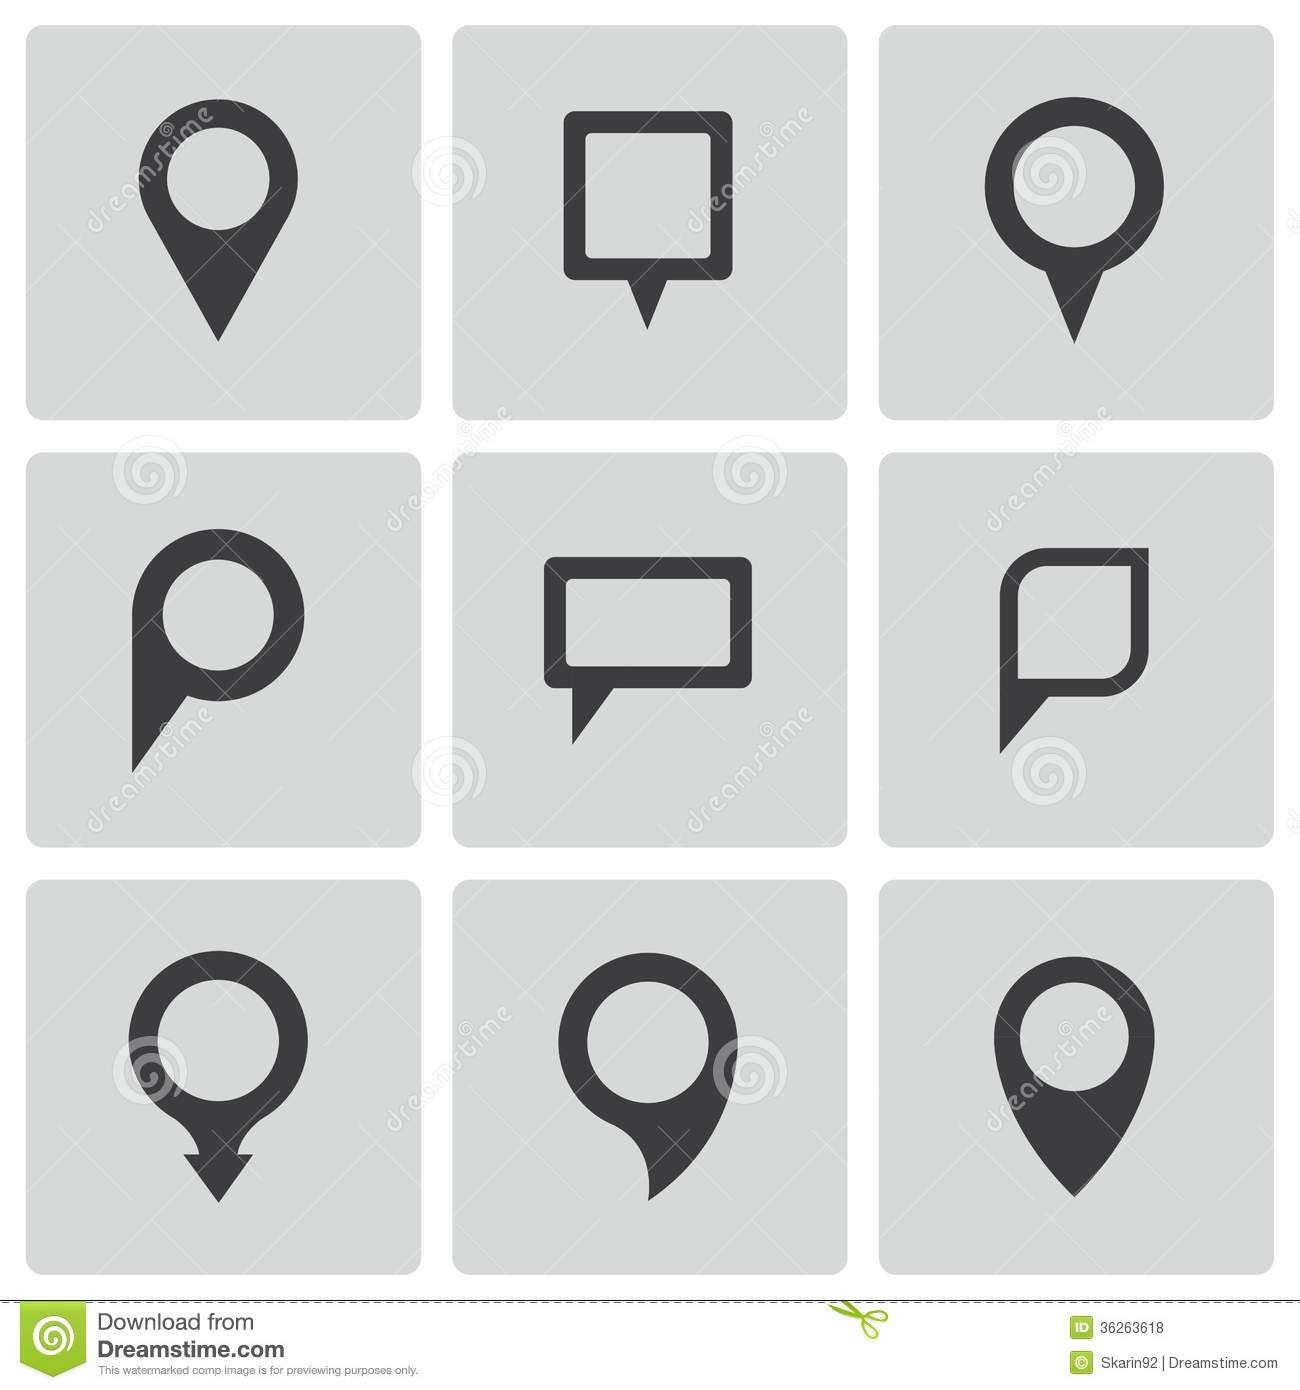 vector black map pointer icons set royalty free stock winding road clipart free winding road clipart free